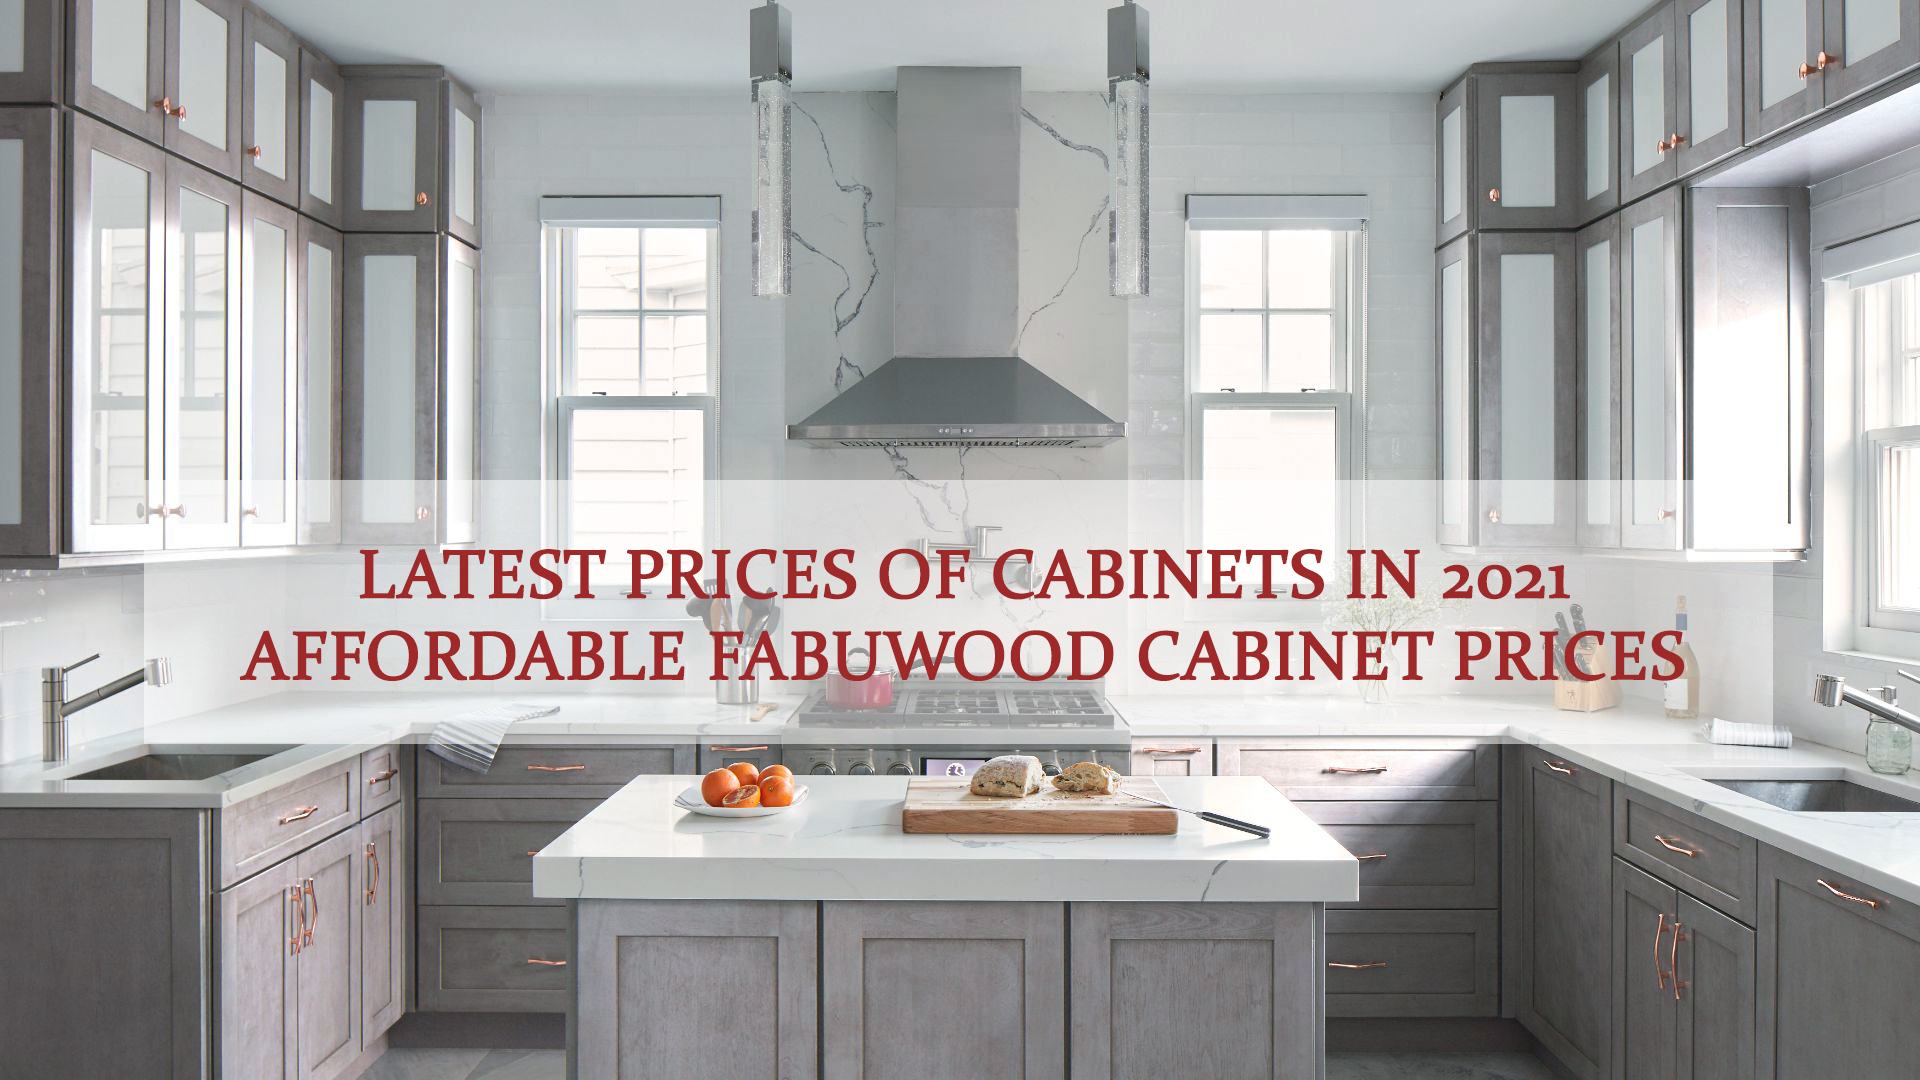 Latest Prices of Cabinets in 2021 | Affordable Fabuwood Cabinet Prices